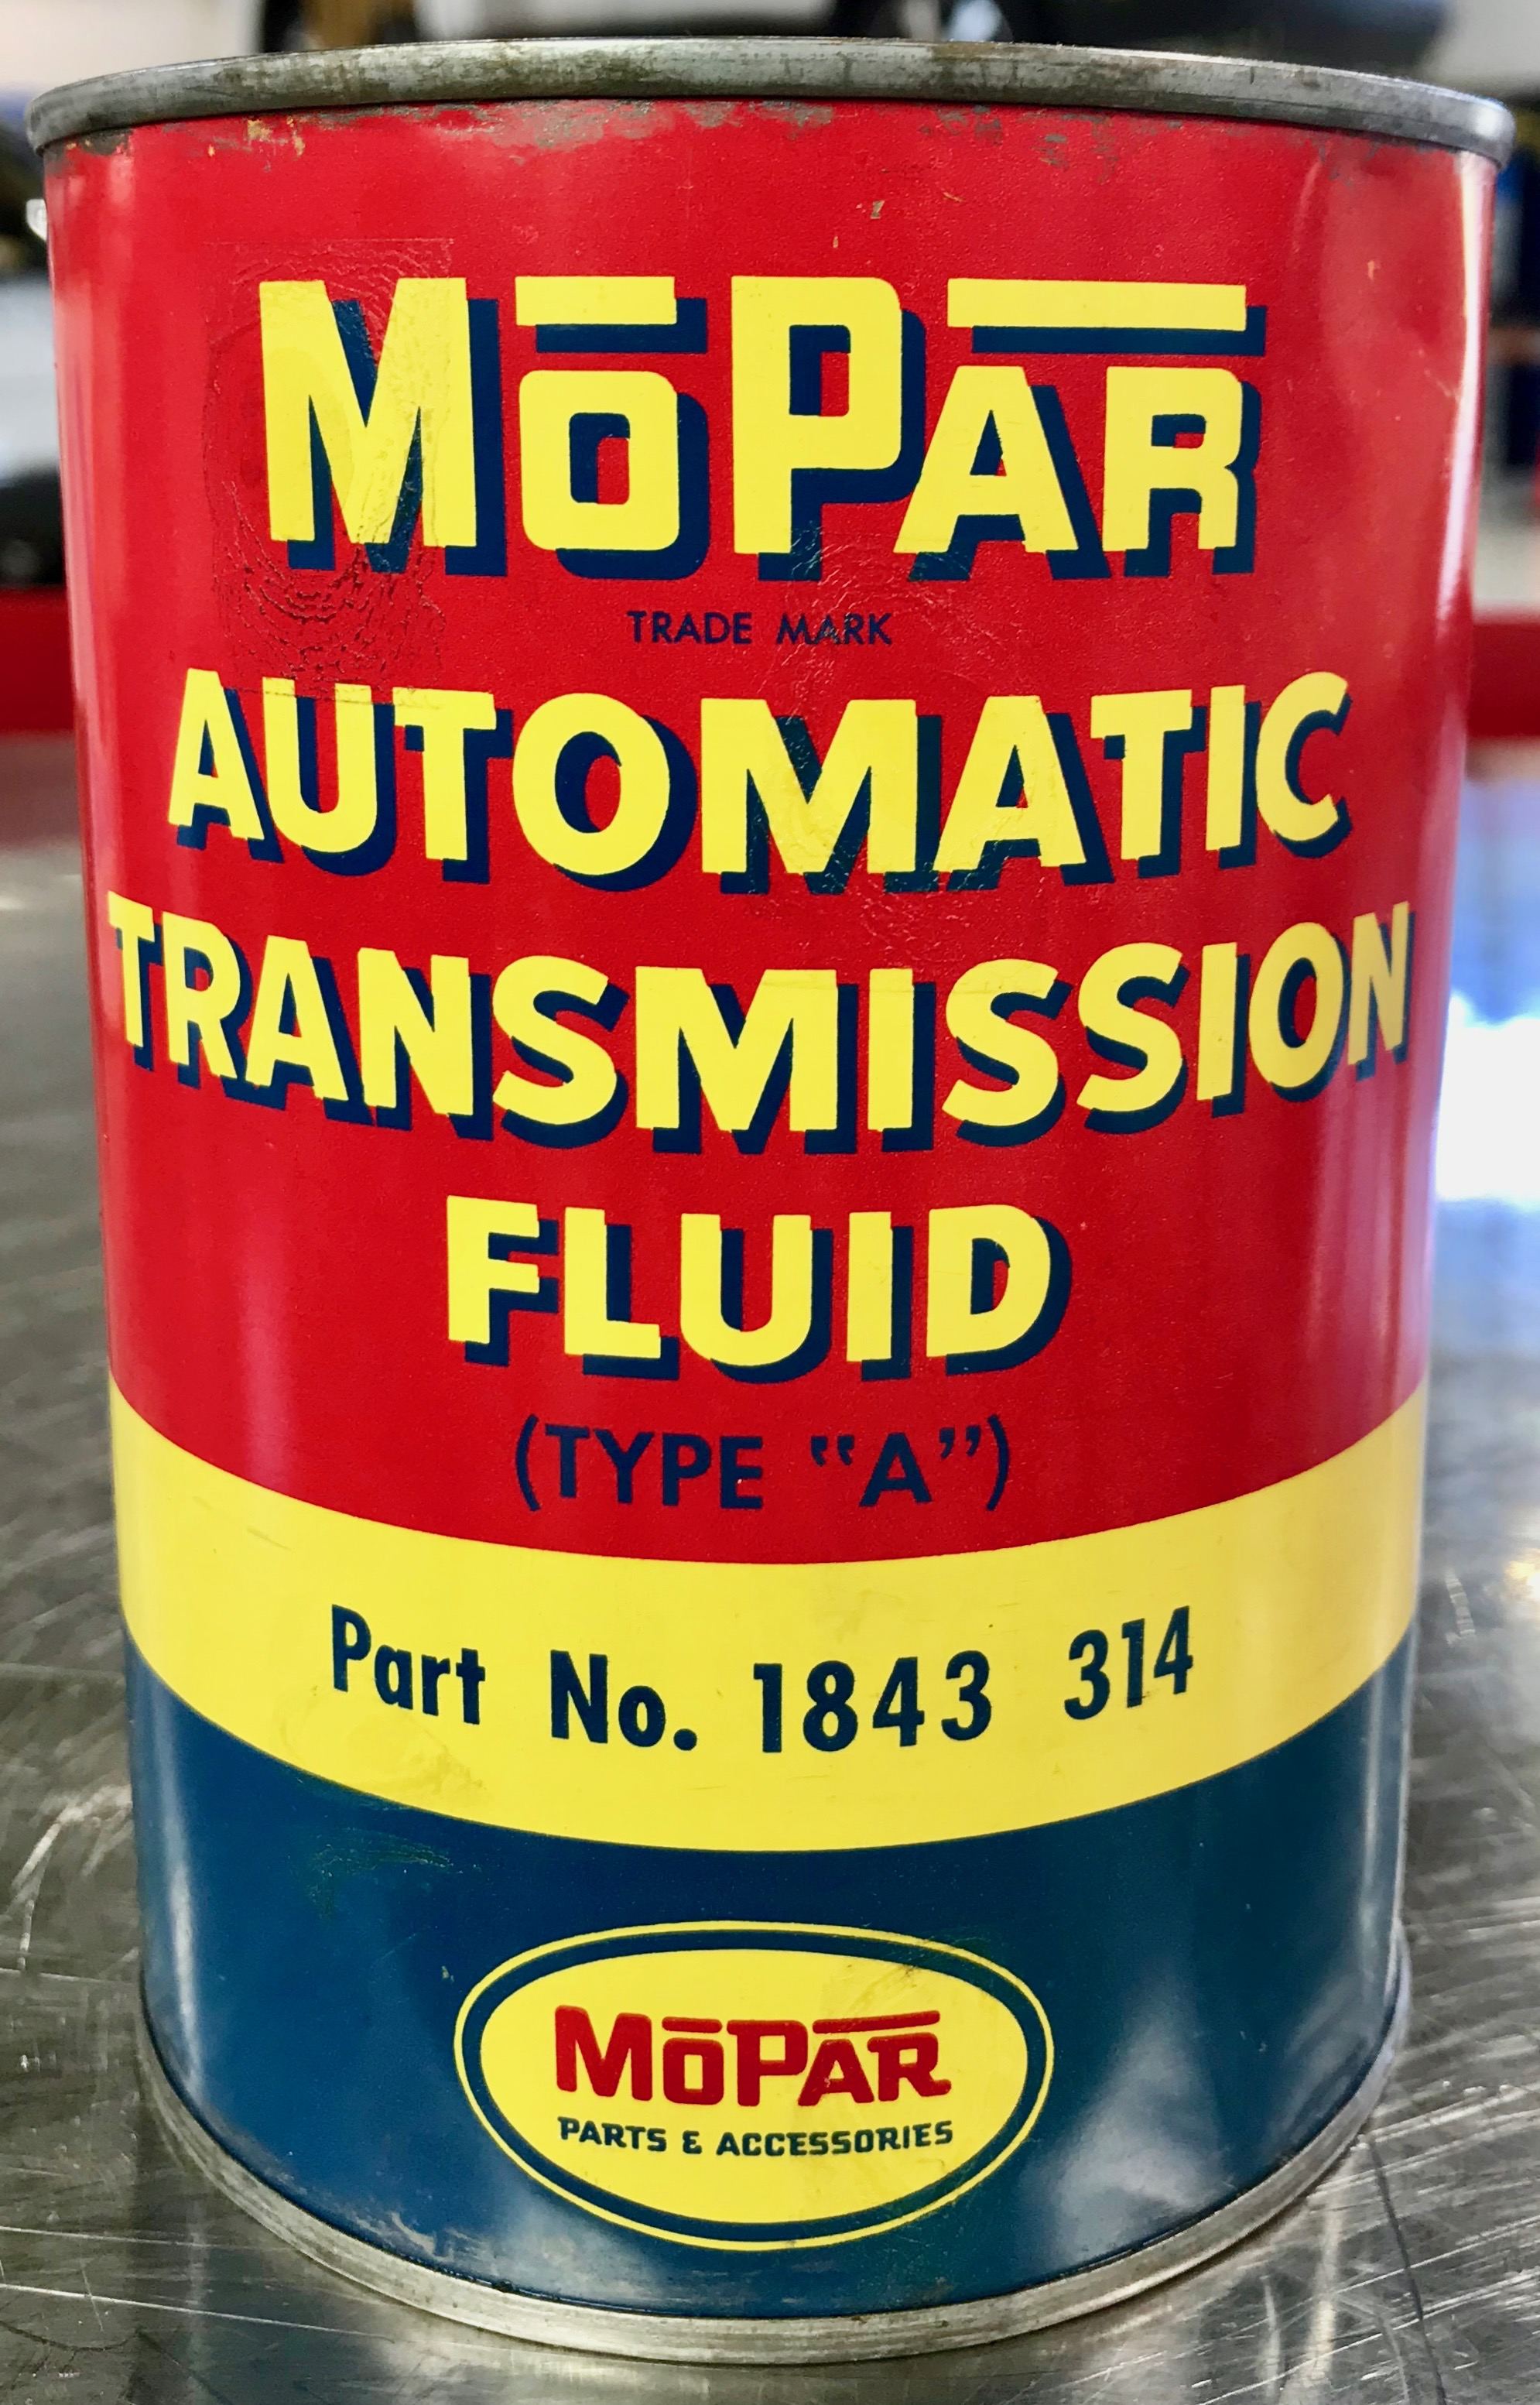 Mopar Automatic Transmission Fluid - Wikipedia